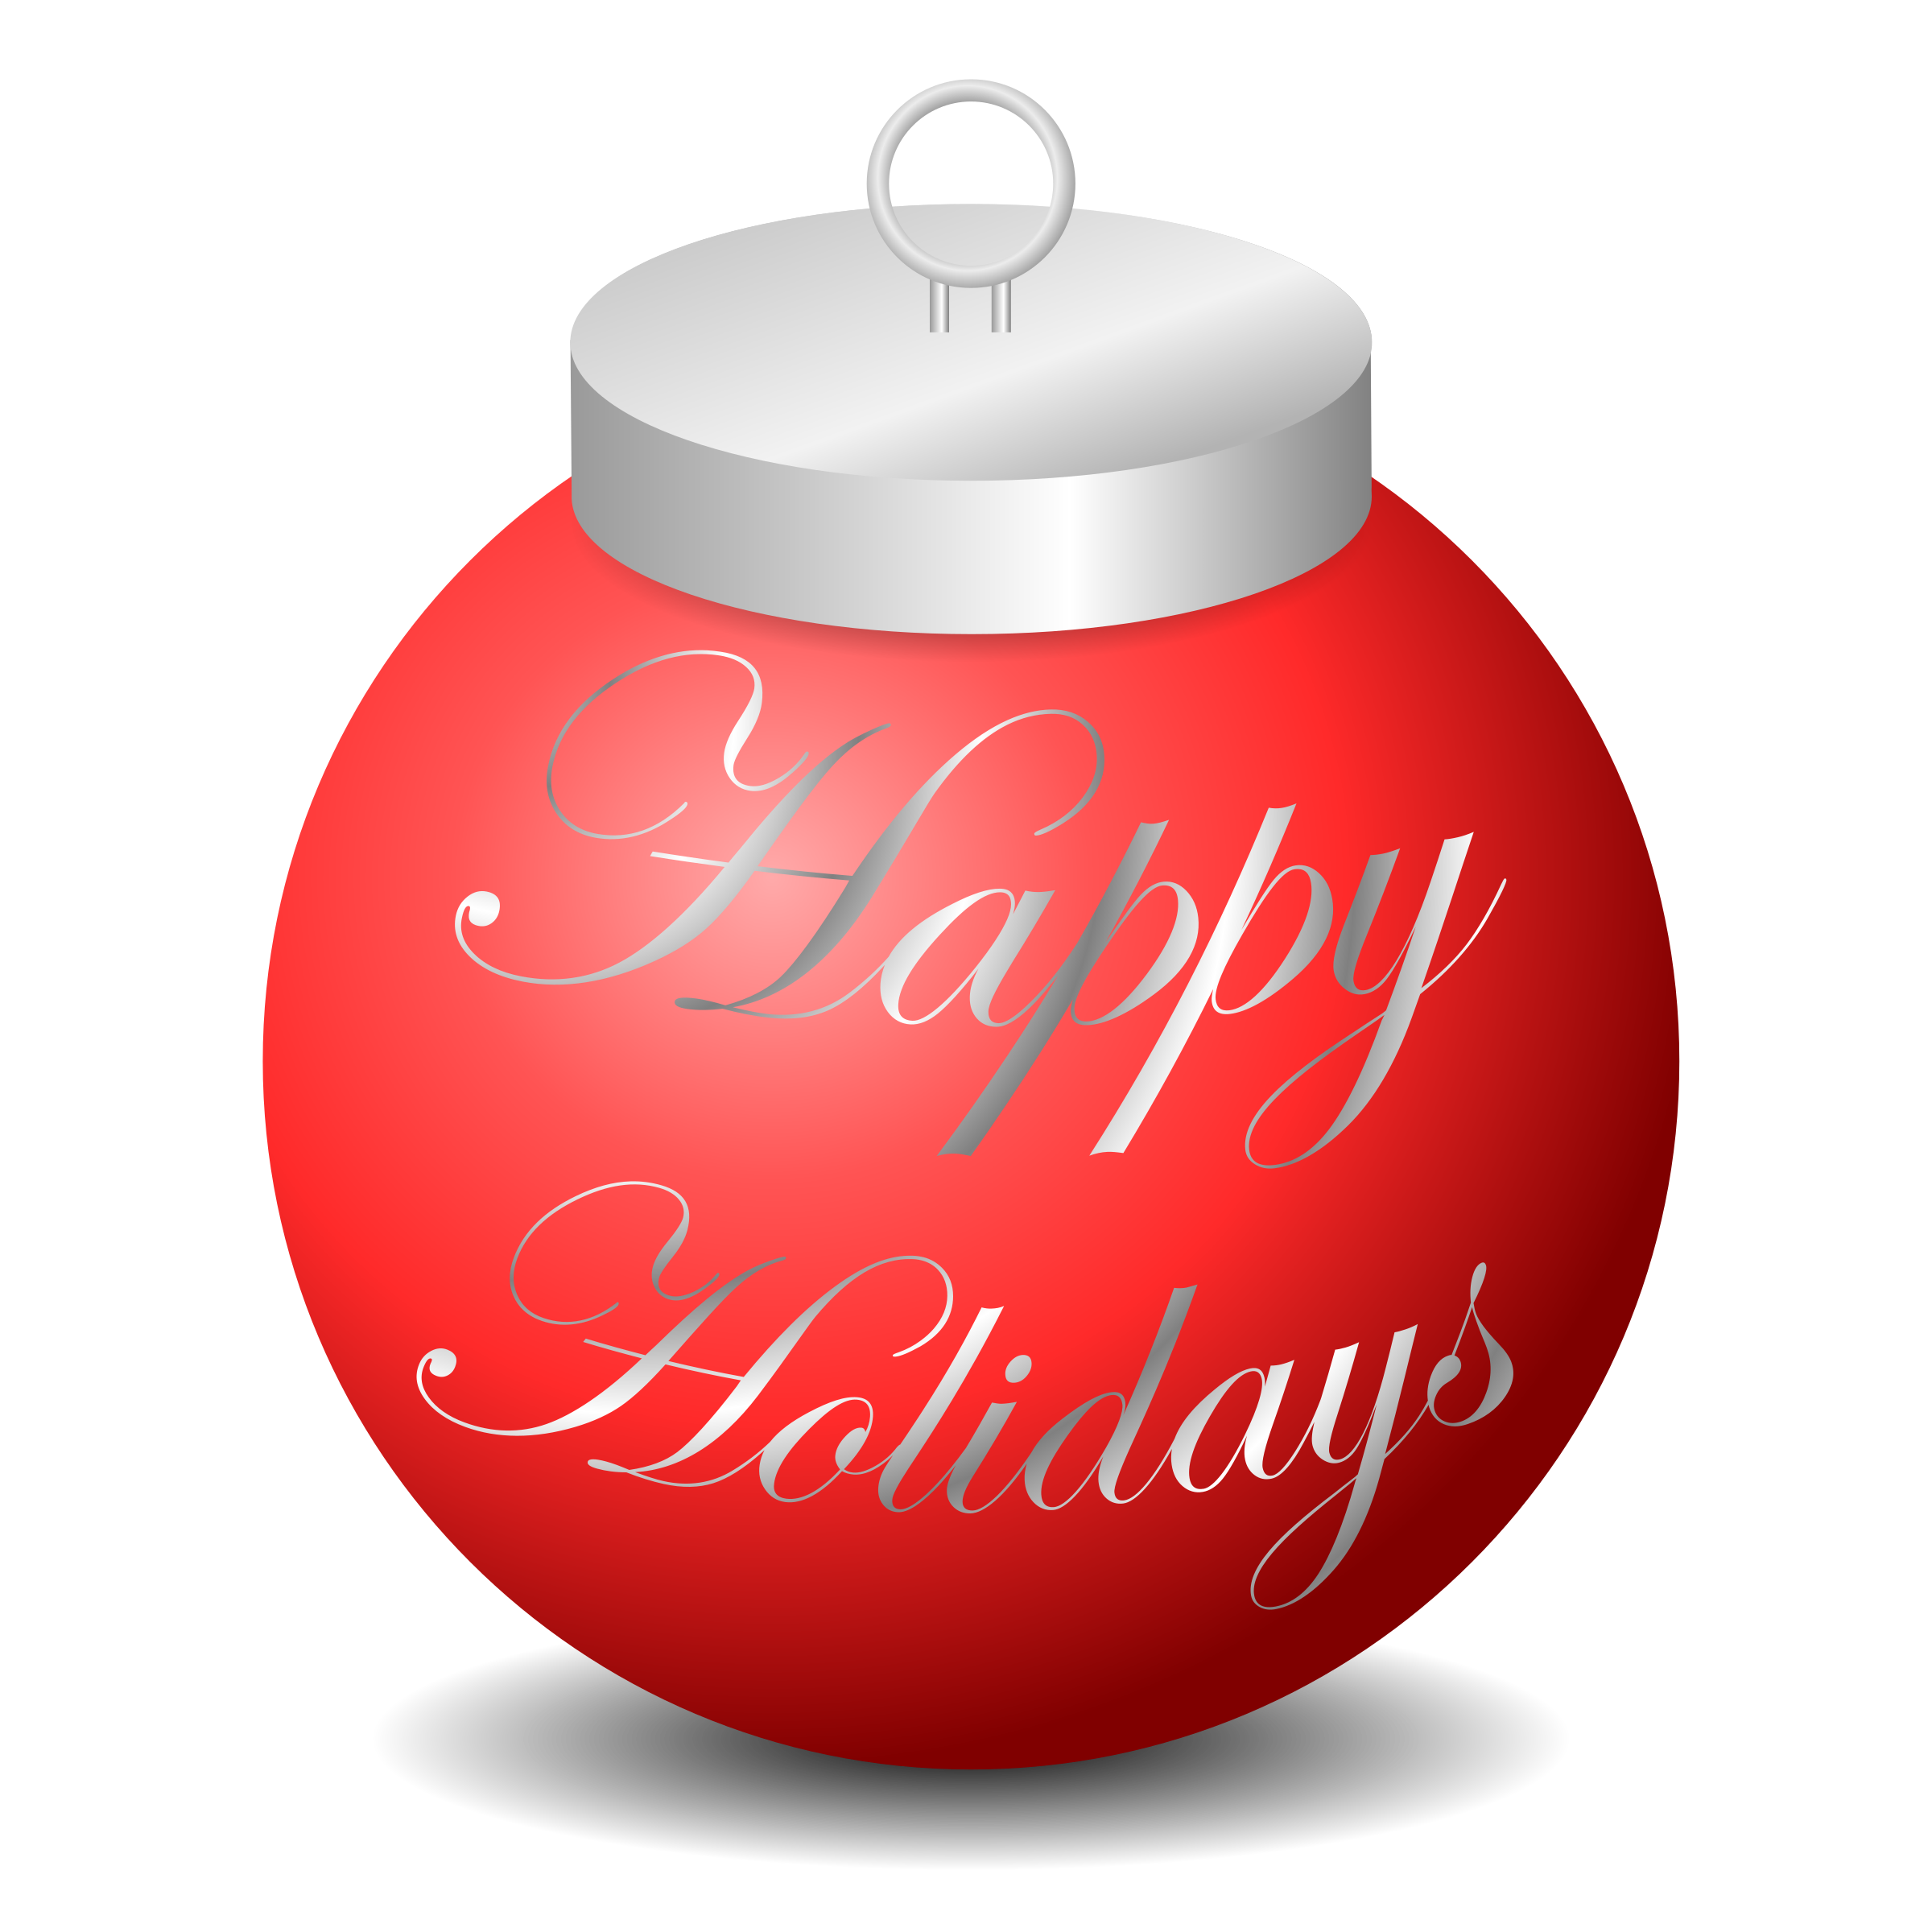 Happy ornament big image. Holidays clipart end